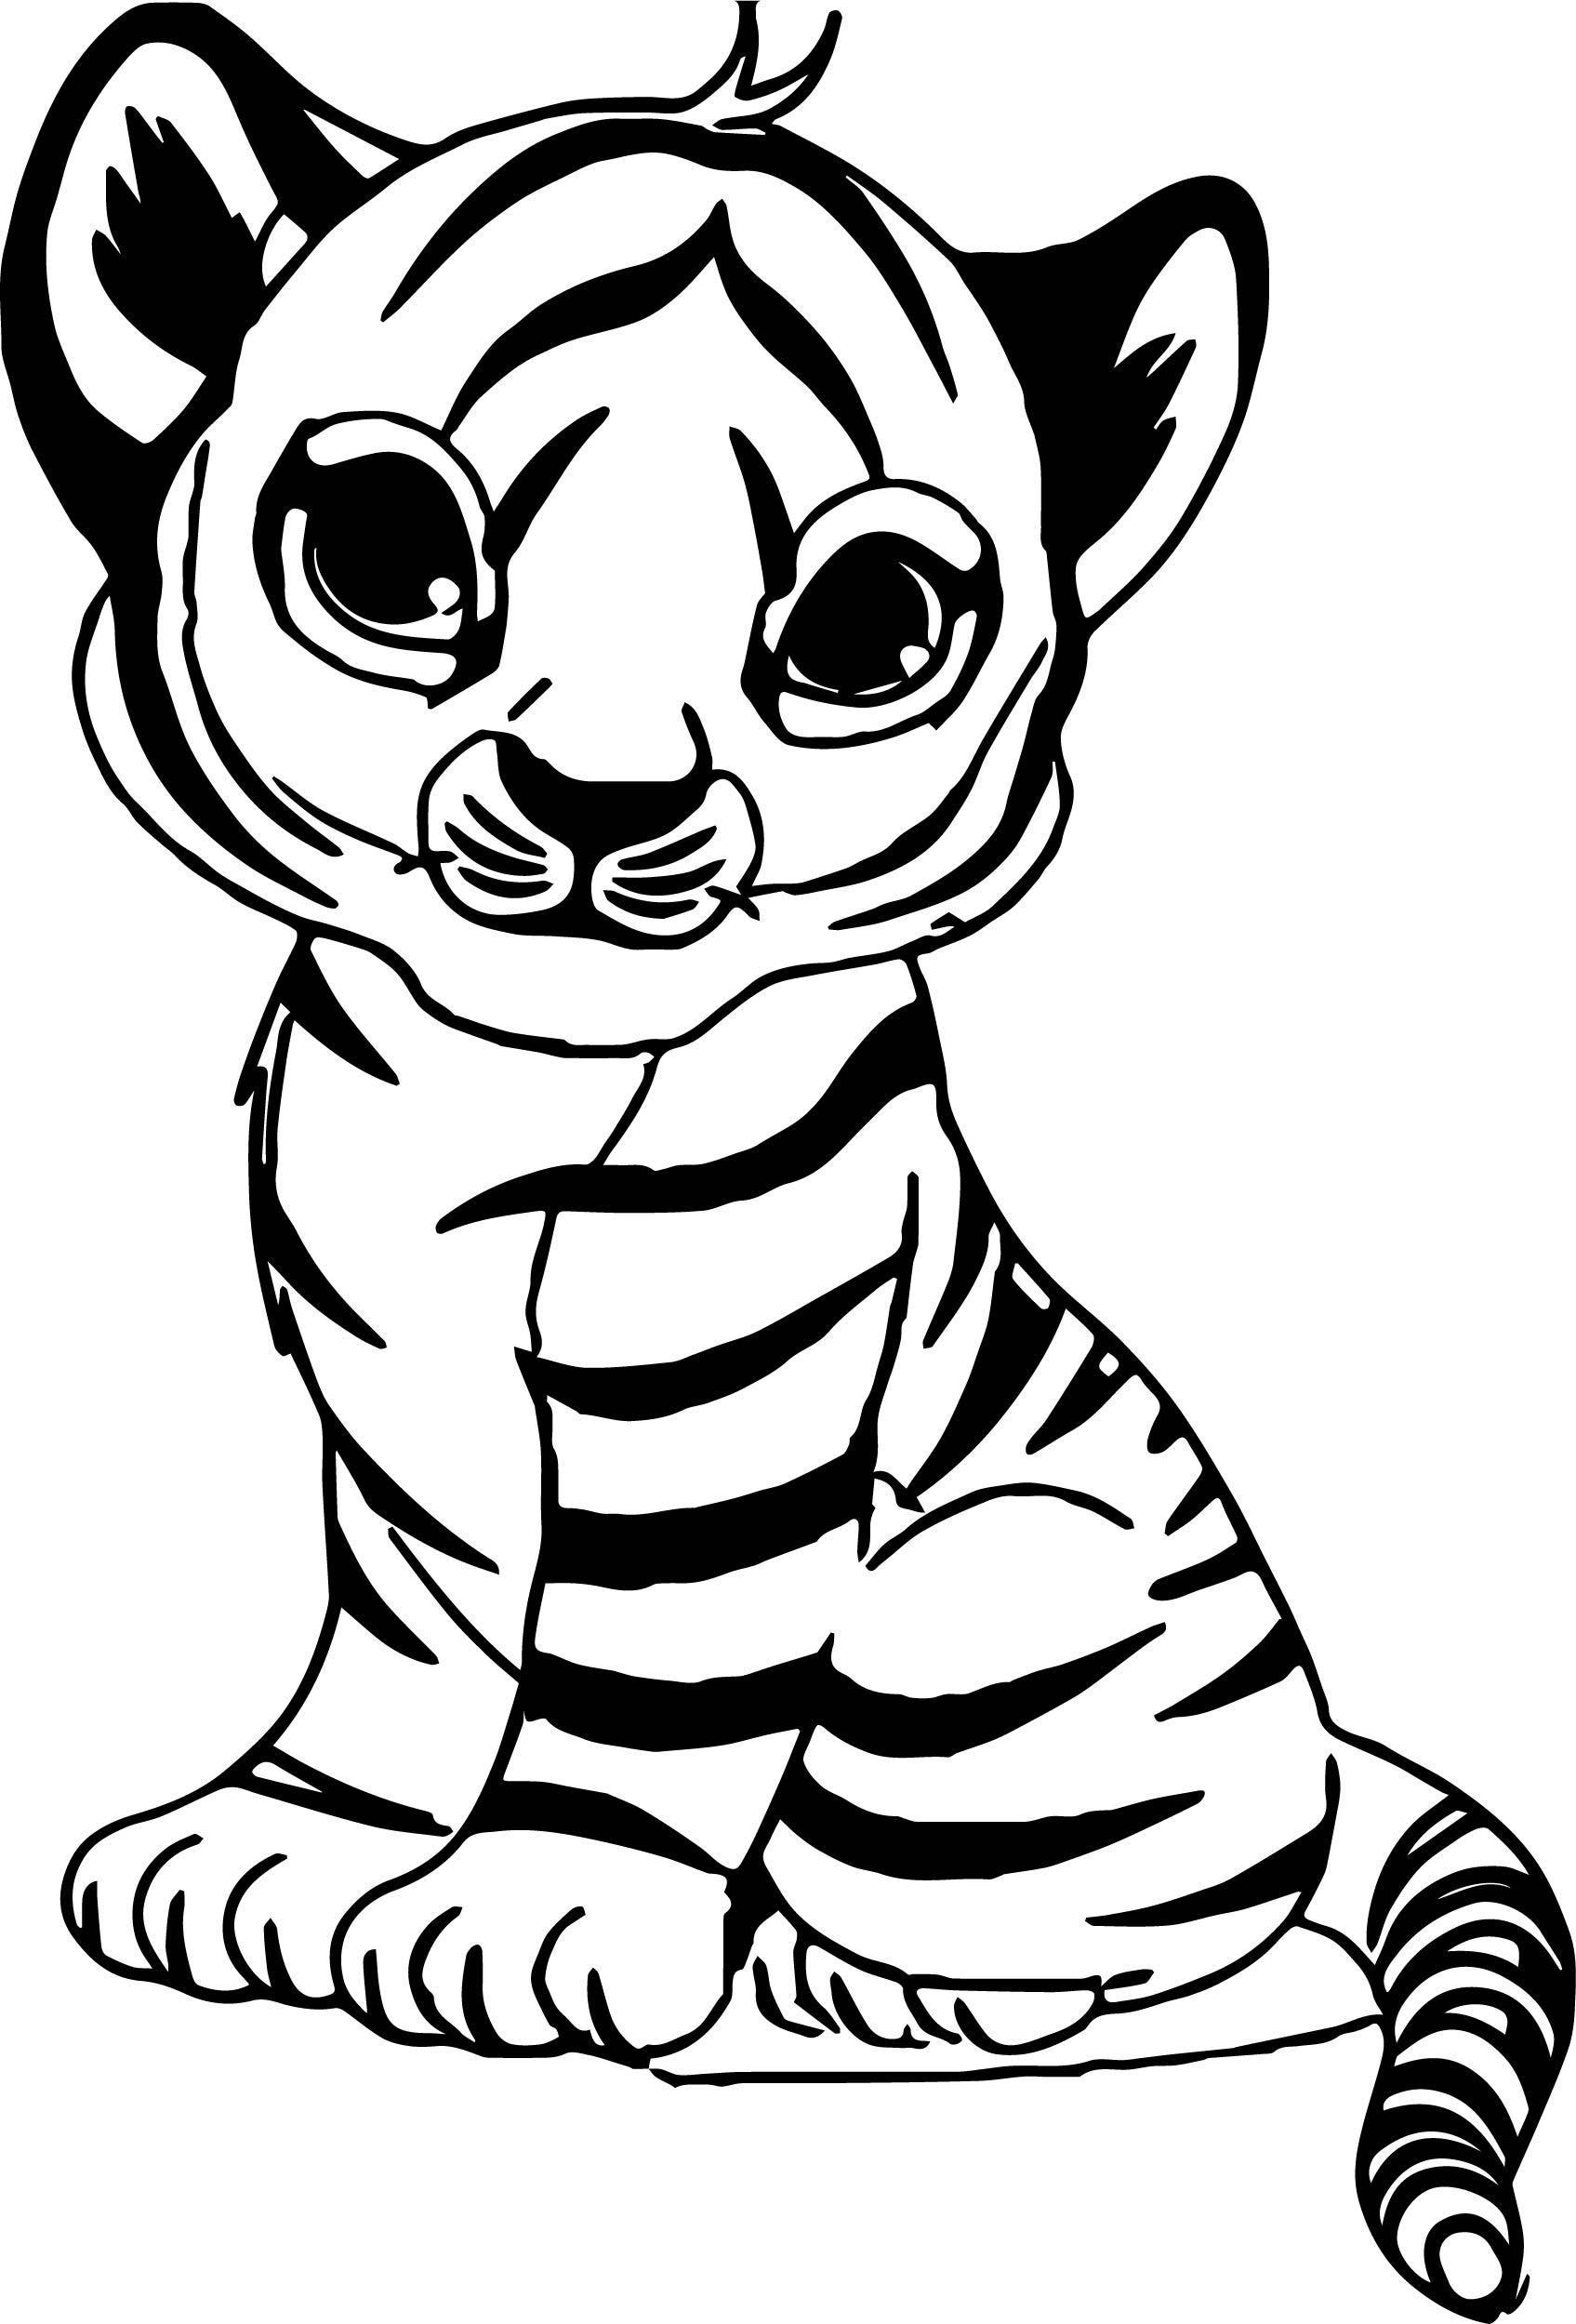 coloring pictures of tigers tiger coloring pages kidsuki coloring of pictures tigers